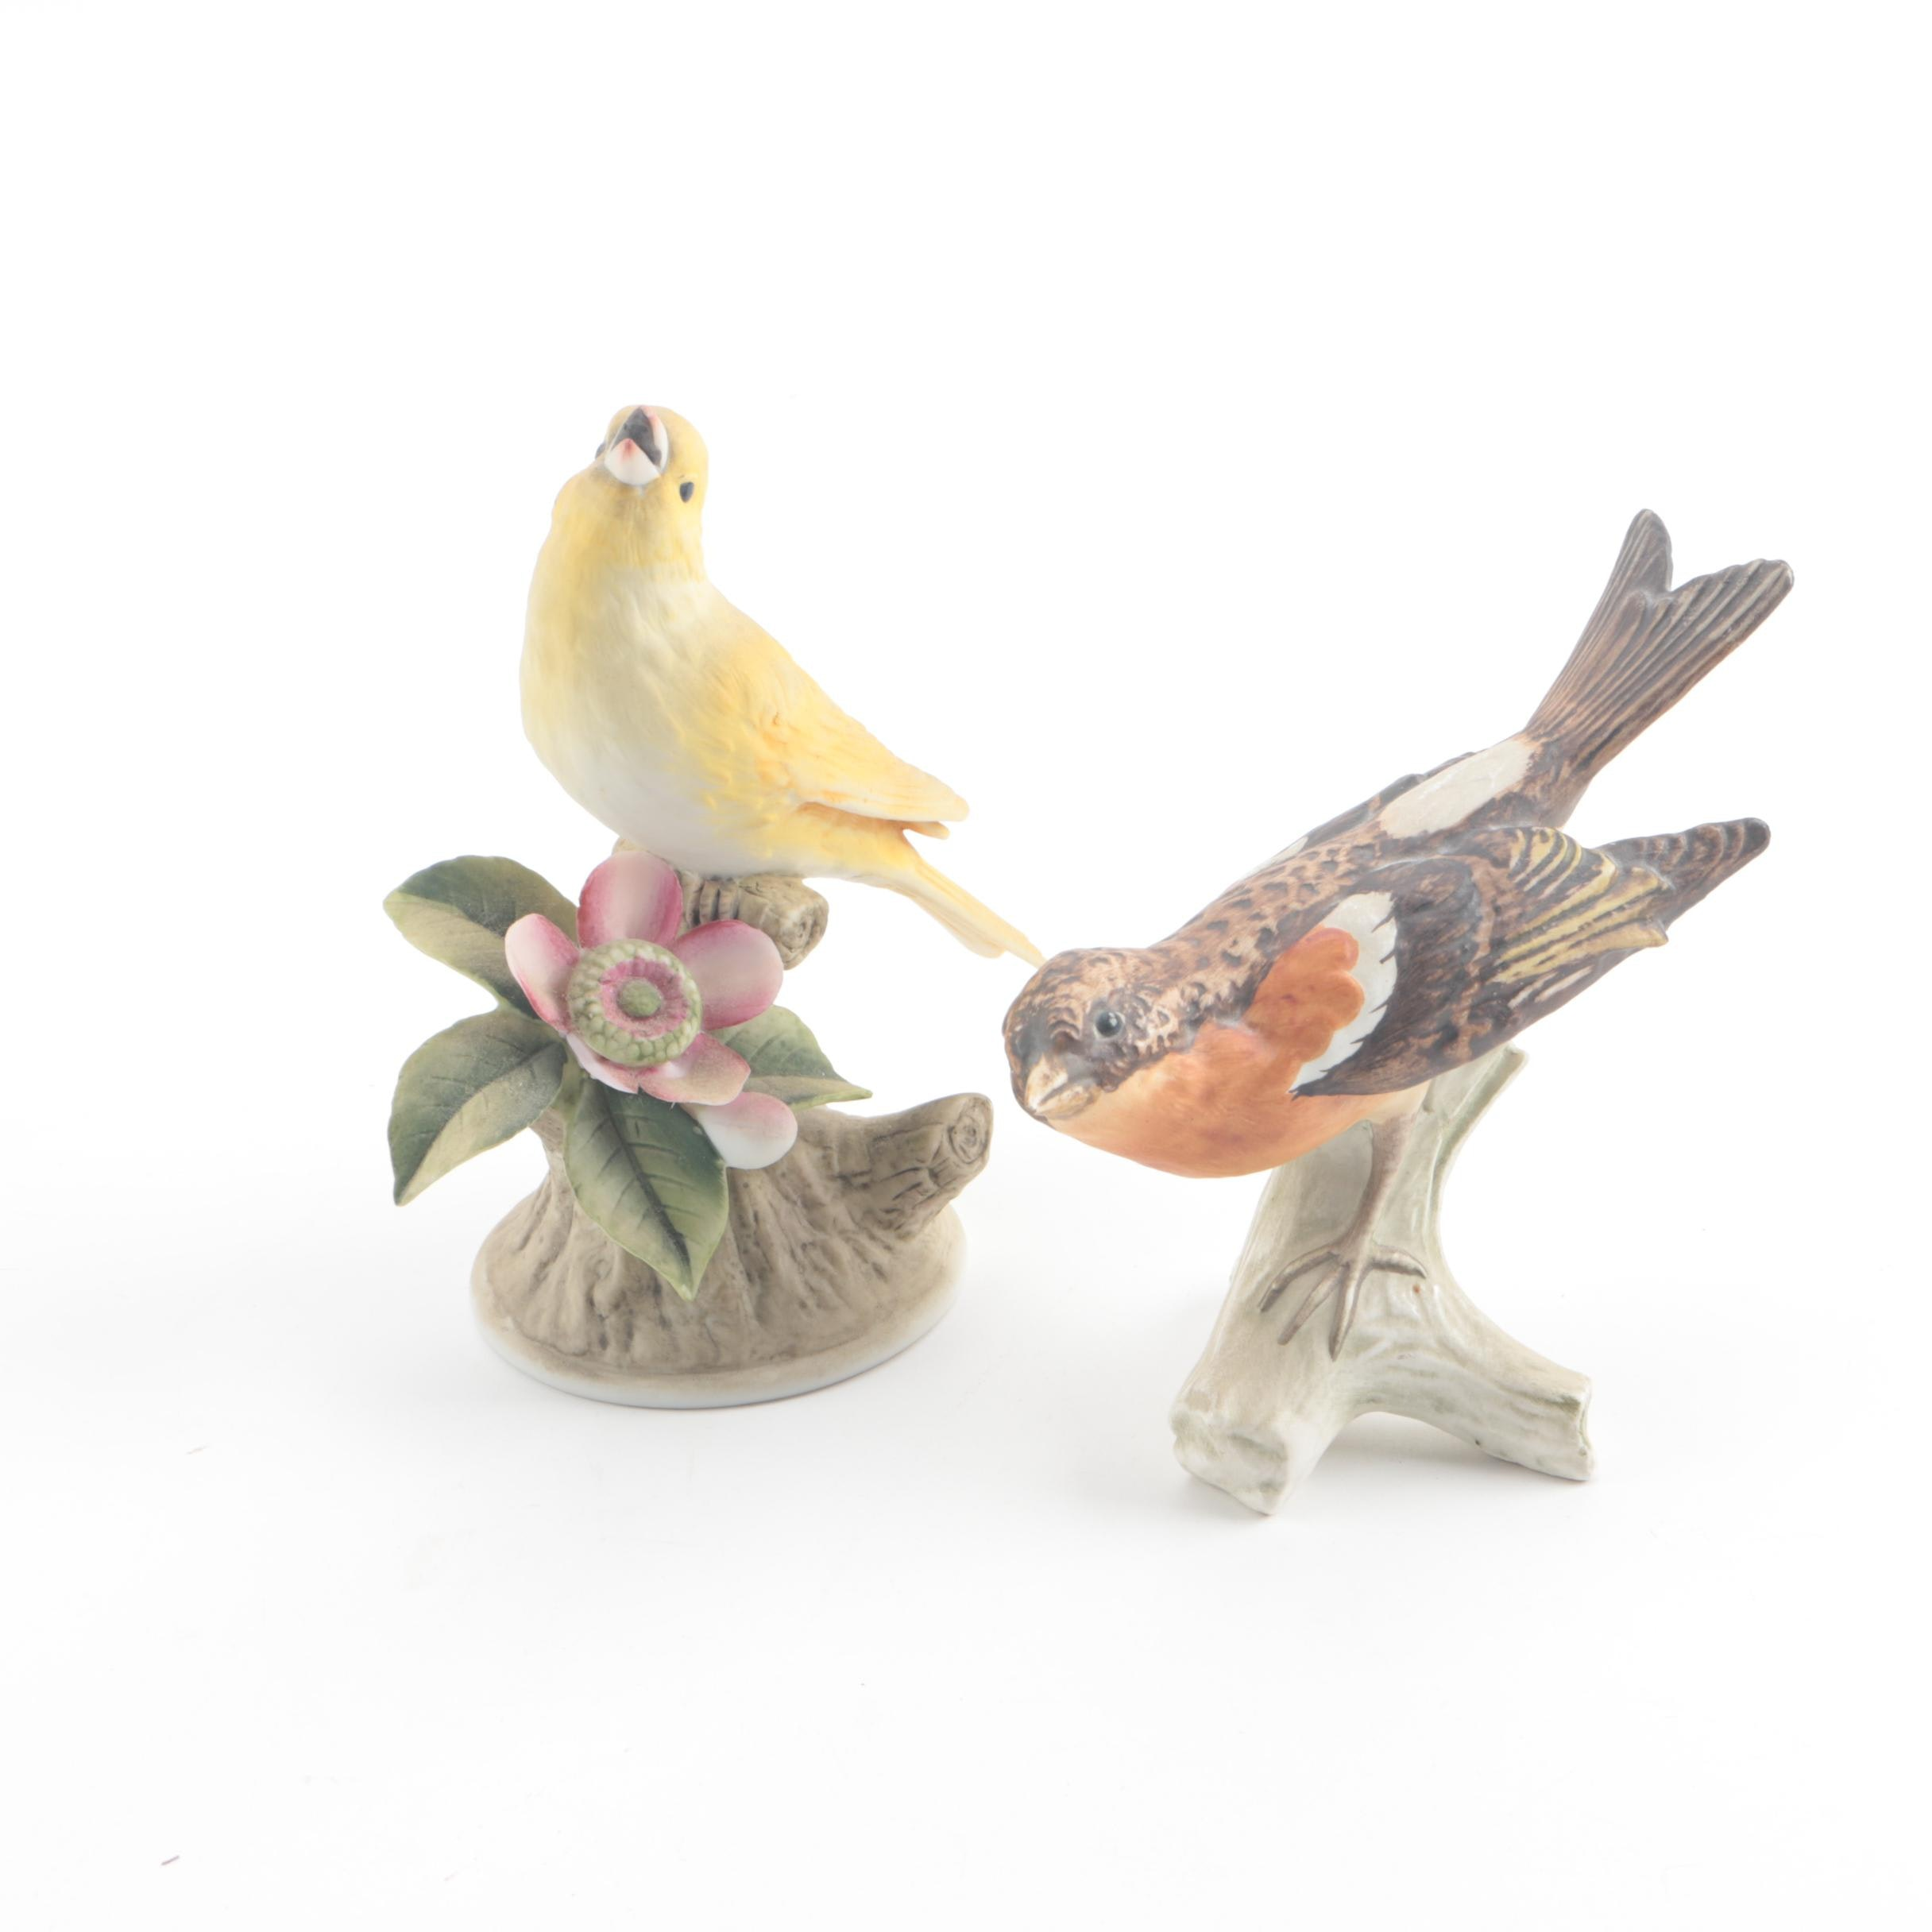 Vintage Goebel and Andrea by Sadek Porcelain Bird Figurines